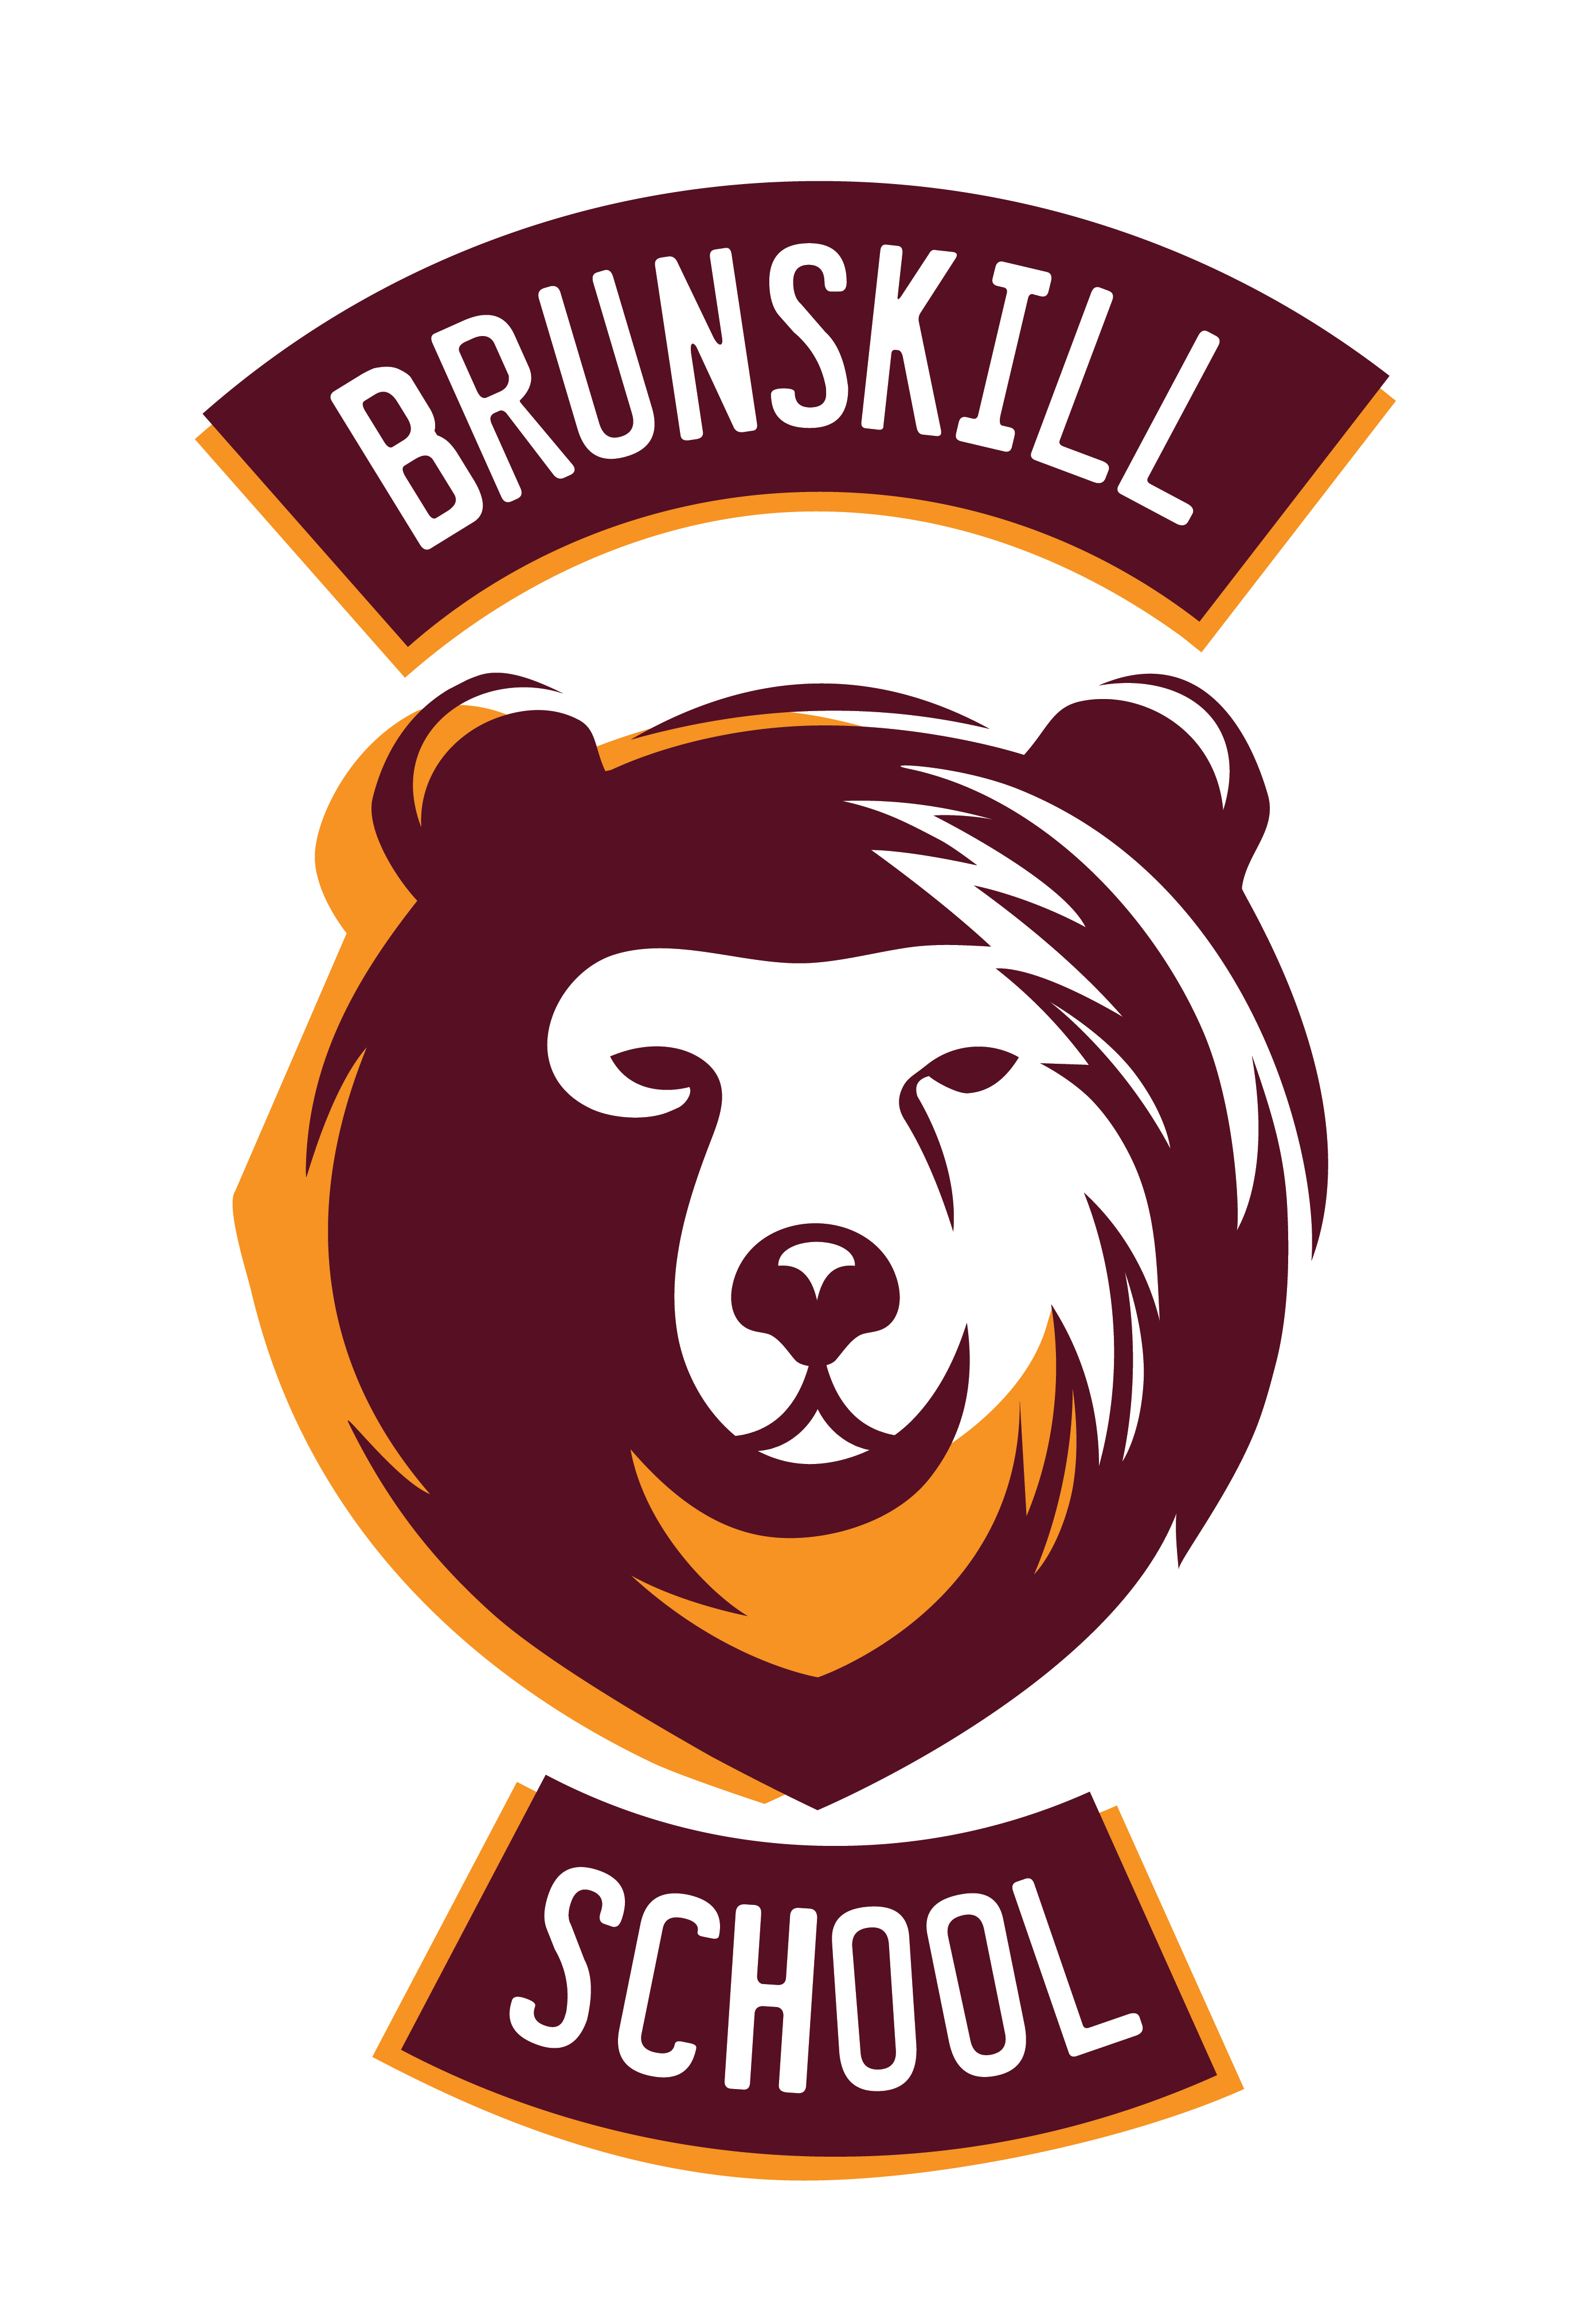 Brunskill School logo